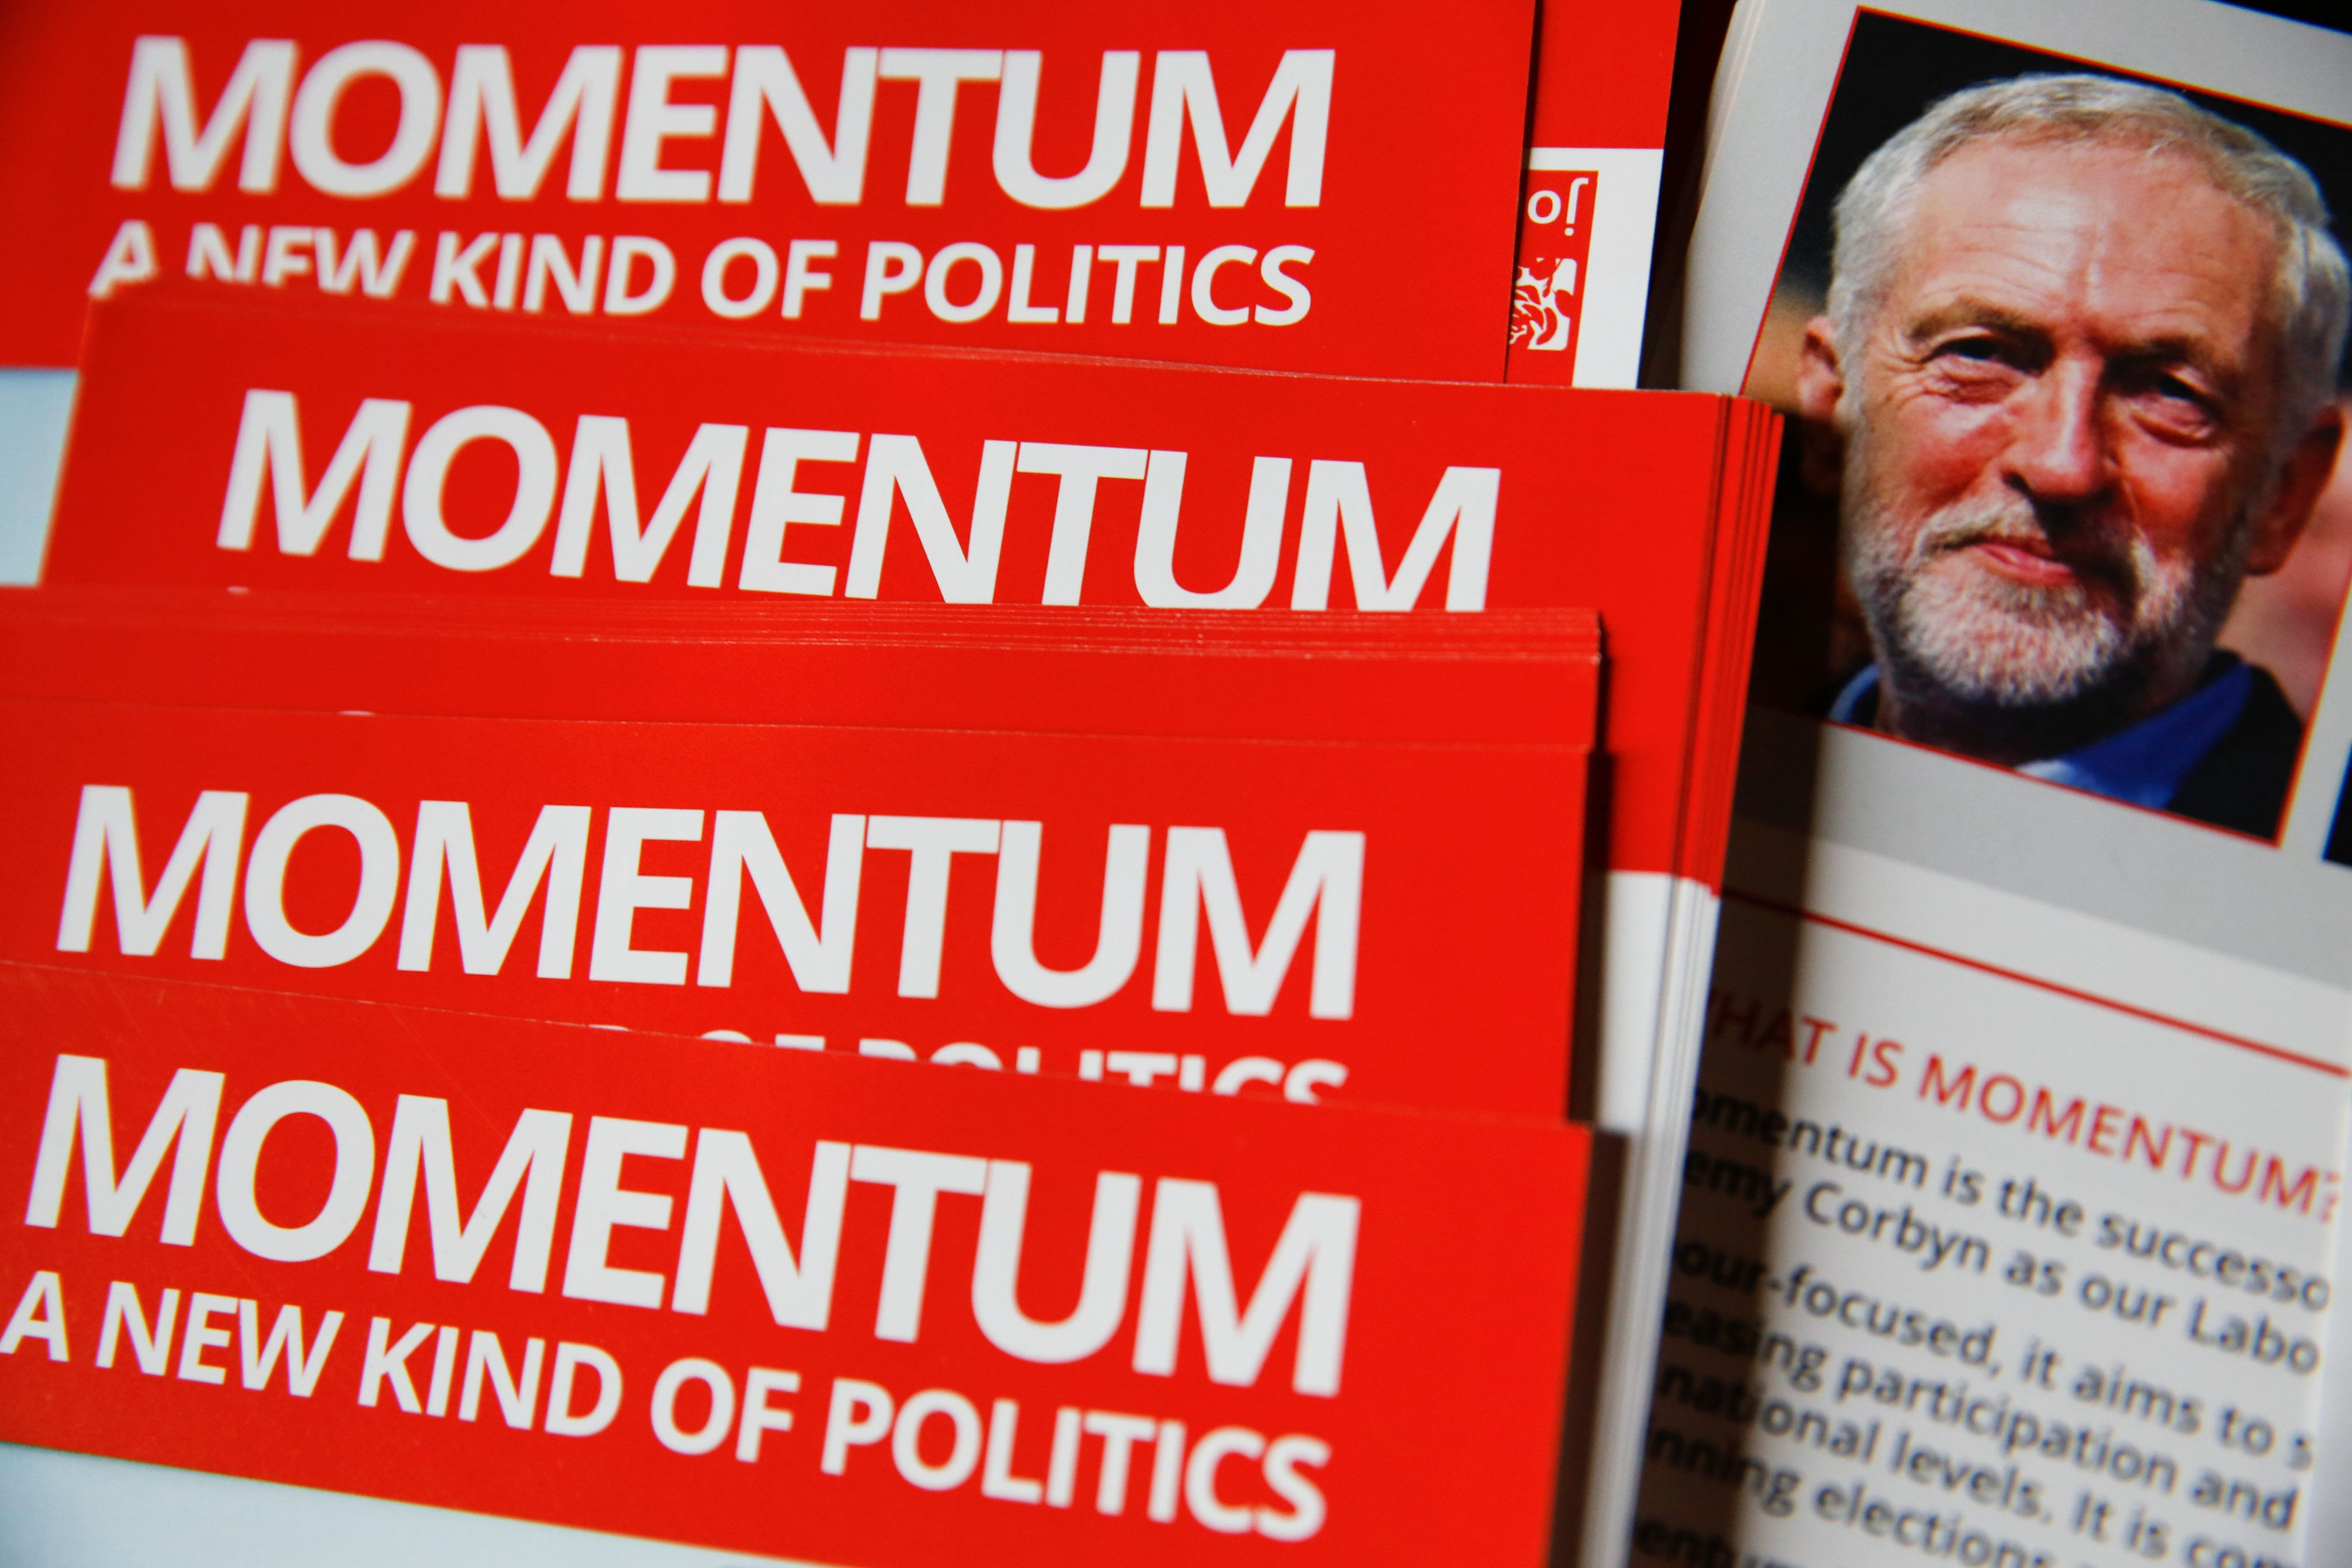 Pro-Corbyn Group Momentum Says Anti-Semitism Claims 'Cannot Be Dismissed As Simply Right-Wing